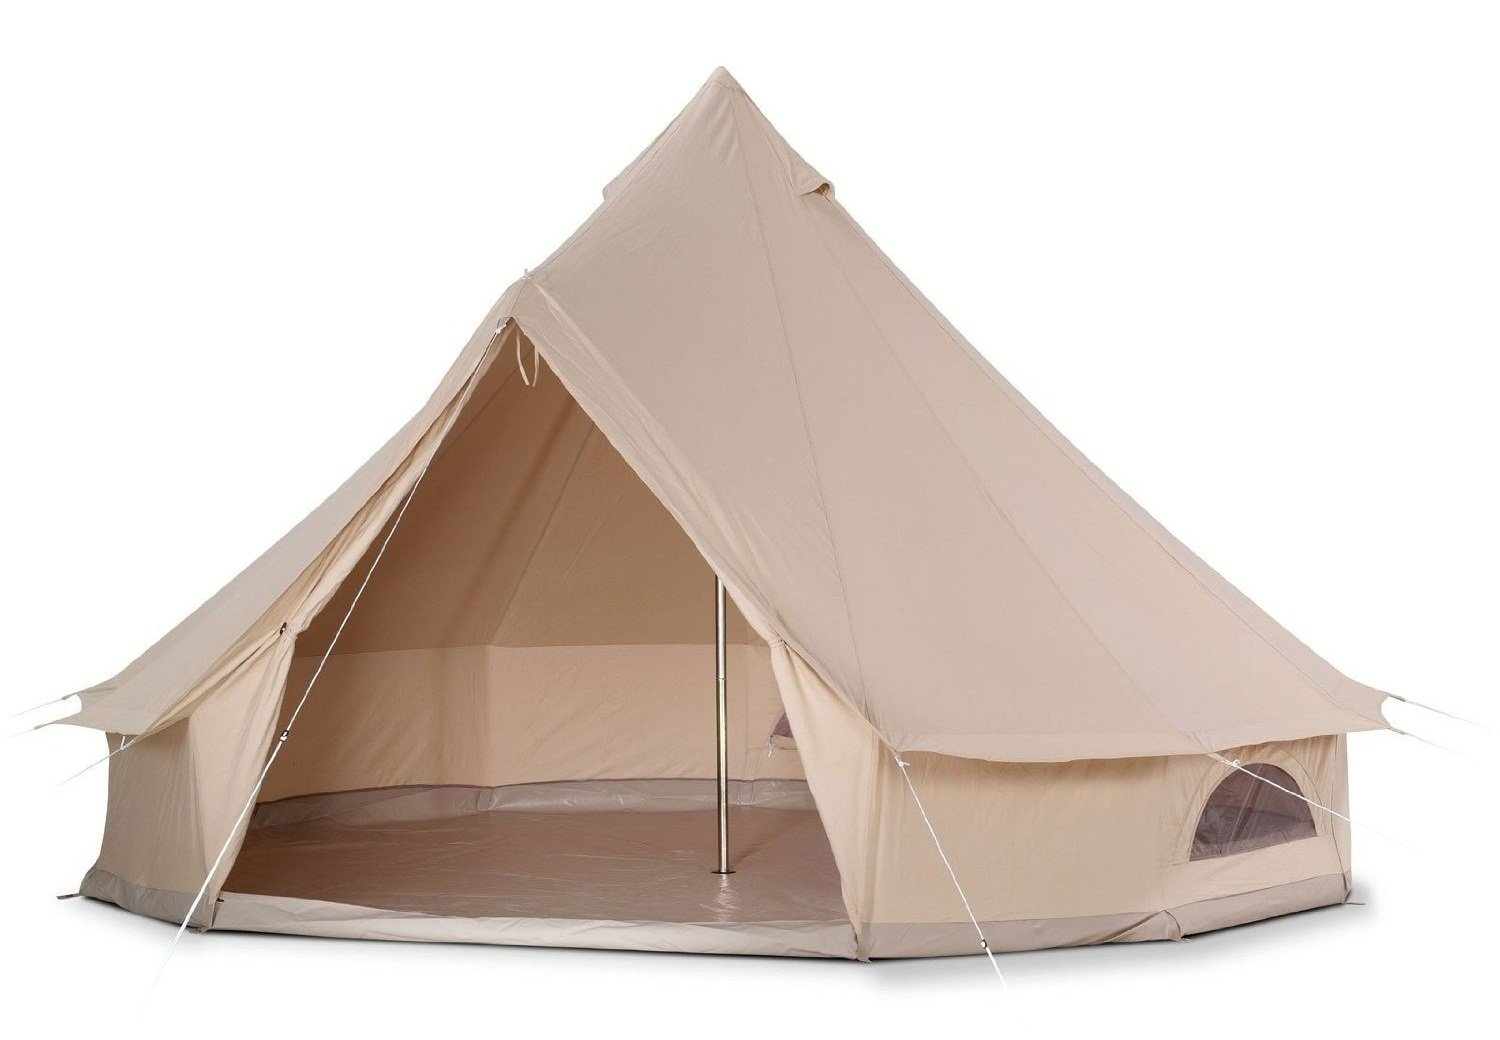 Heavy Duty Waterproof Four Season Sibley Tent from Cozy House from £490